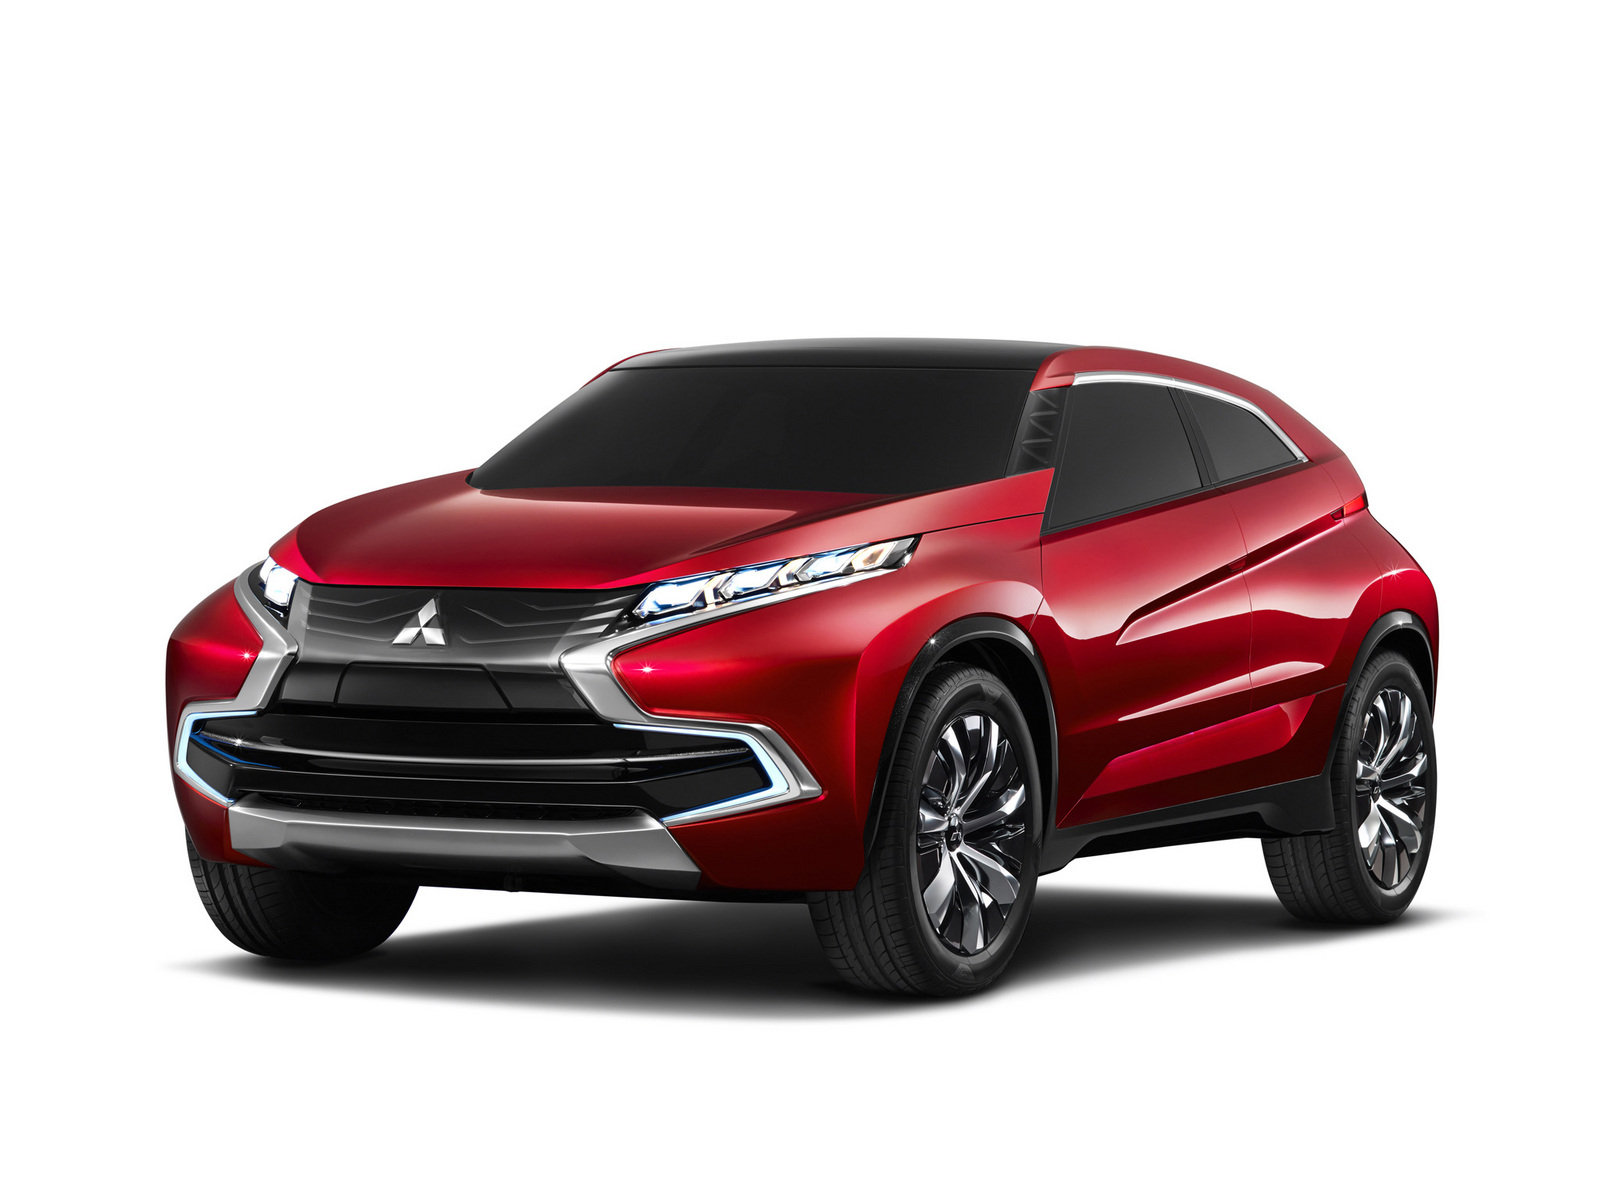 2013 mitsubishi xr phev concept review top speed